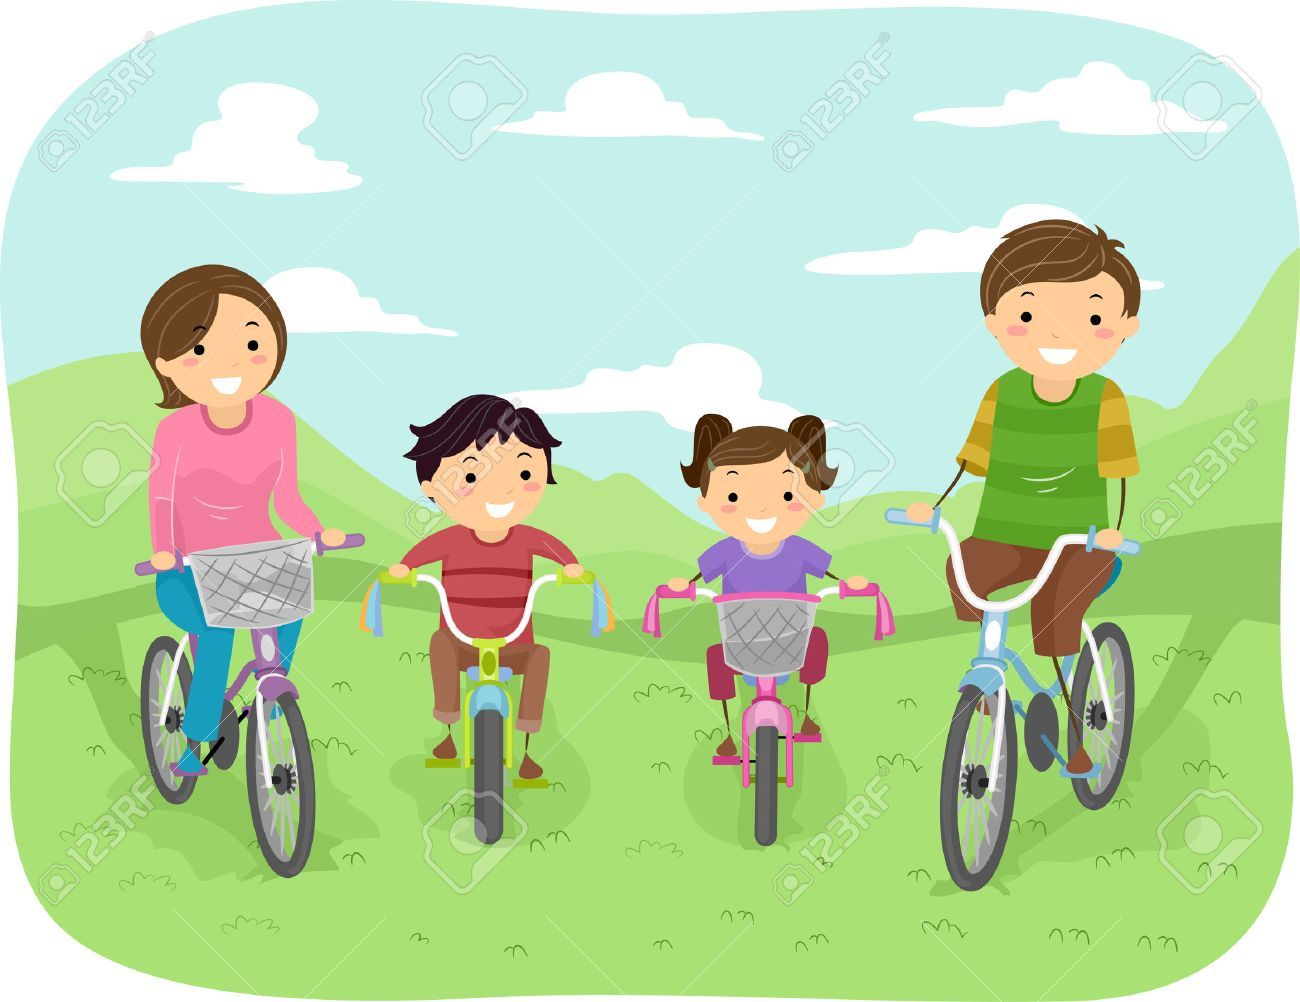 Family park clipart svg black and white stock Family at the park clipart 8 » Clipart Portal svg black and white stock